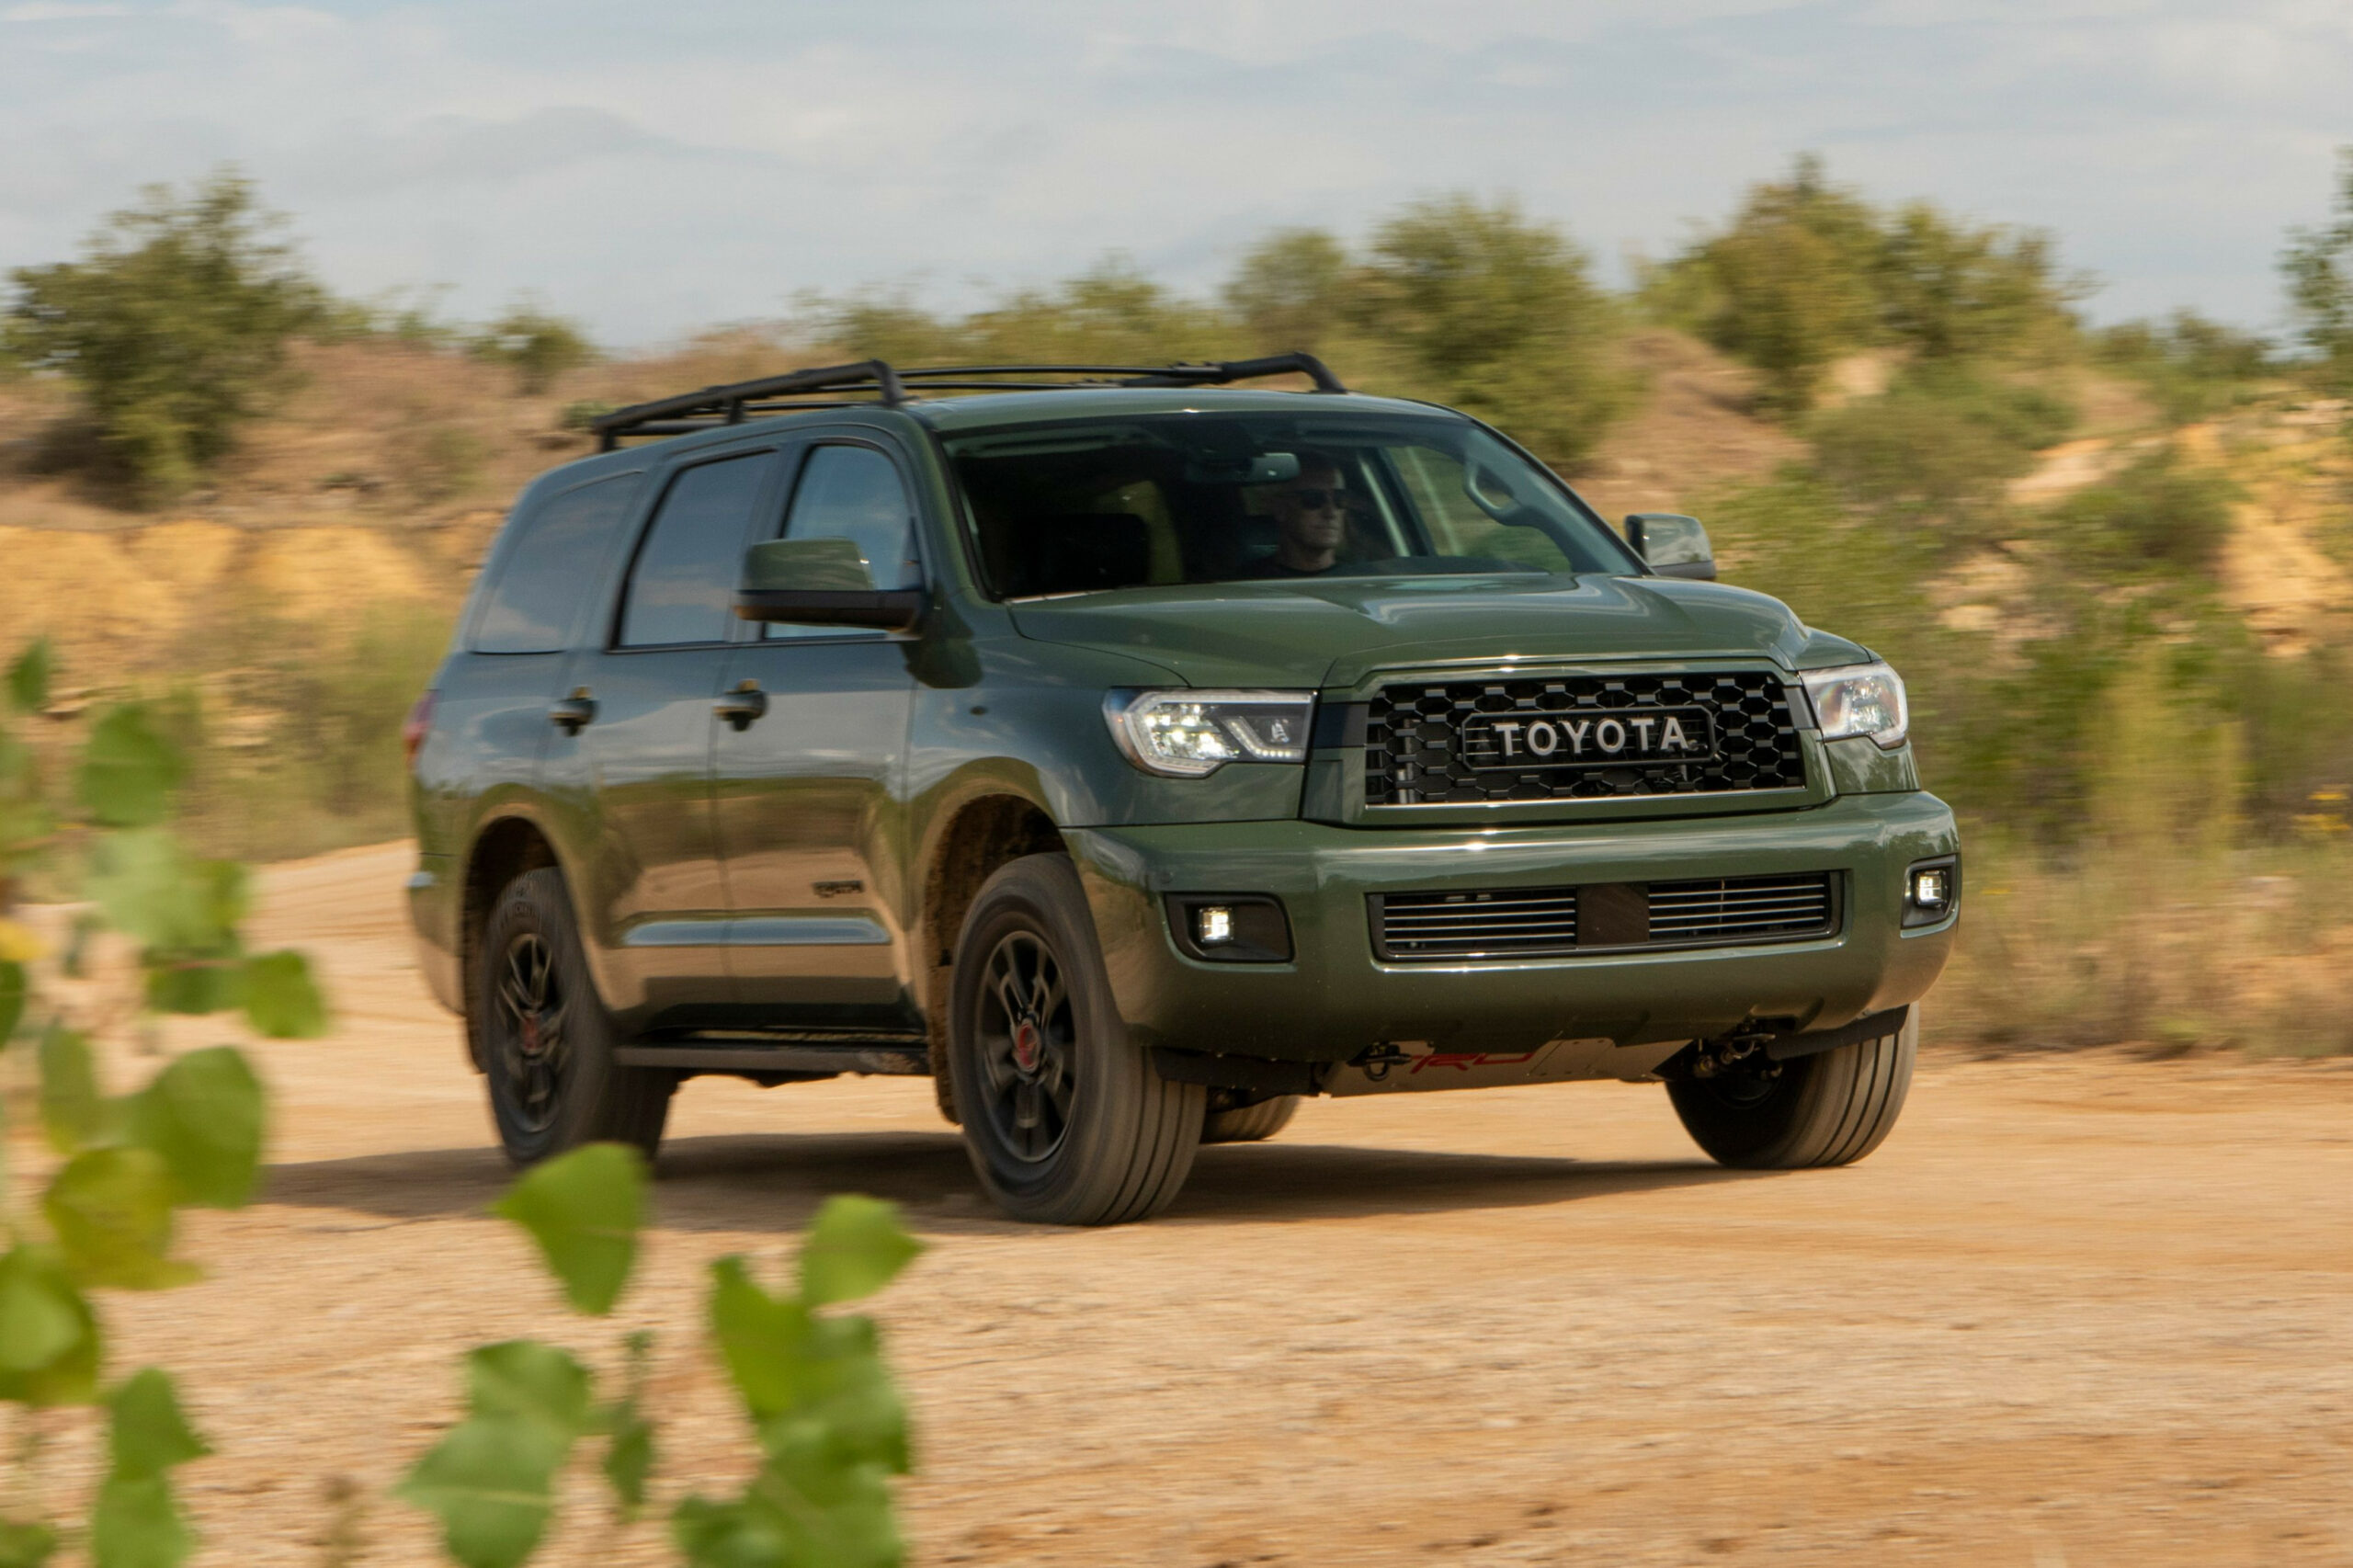 7 Toyota Sequoia Review, Pricing, and Specs - 2020 toyota sequoia price